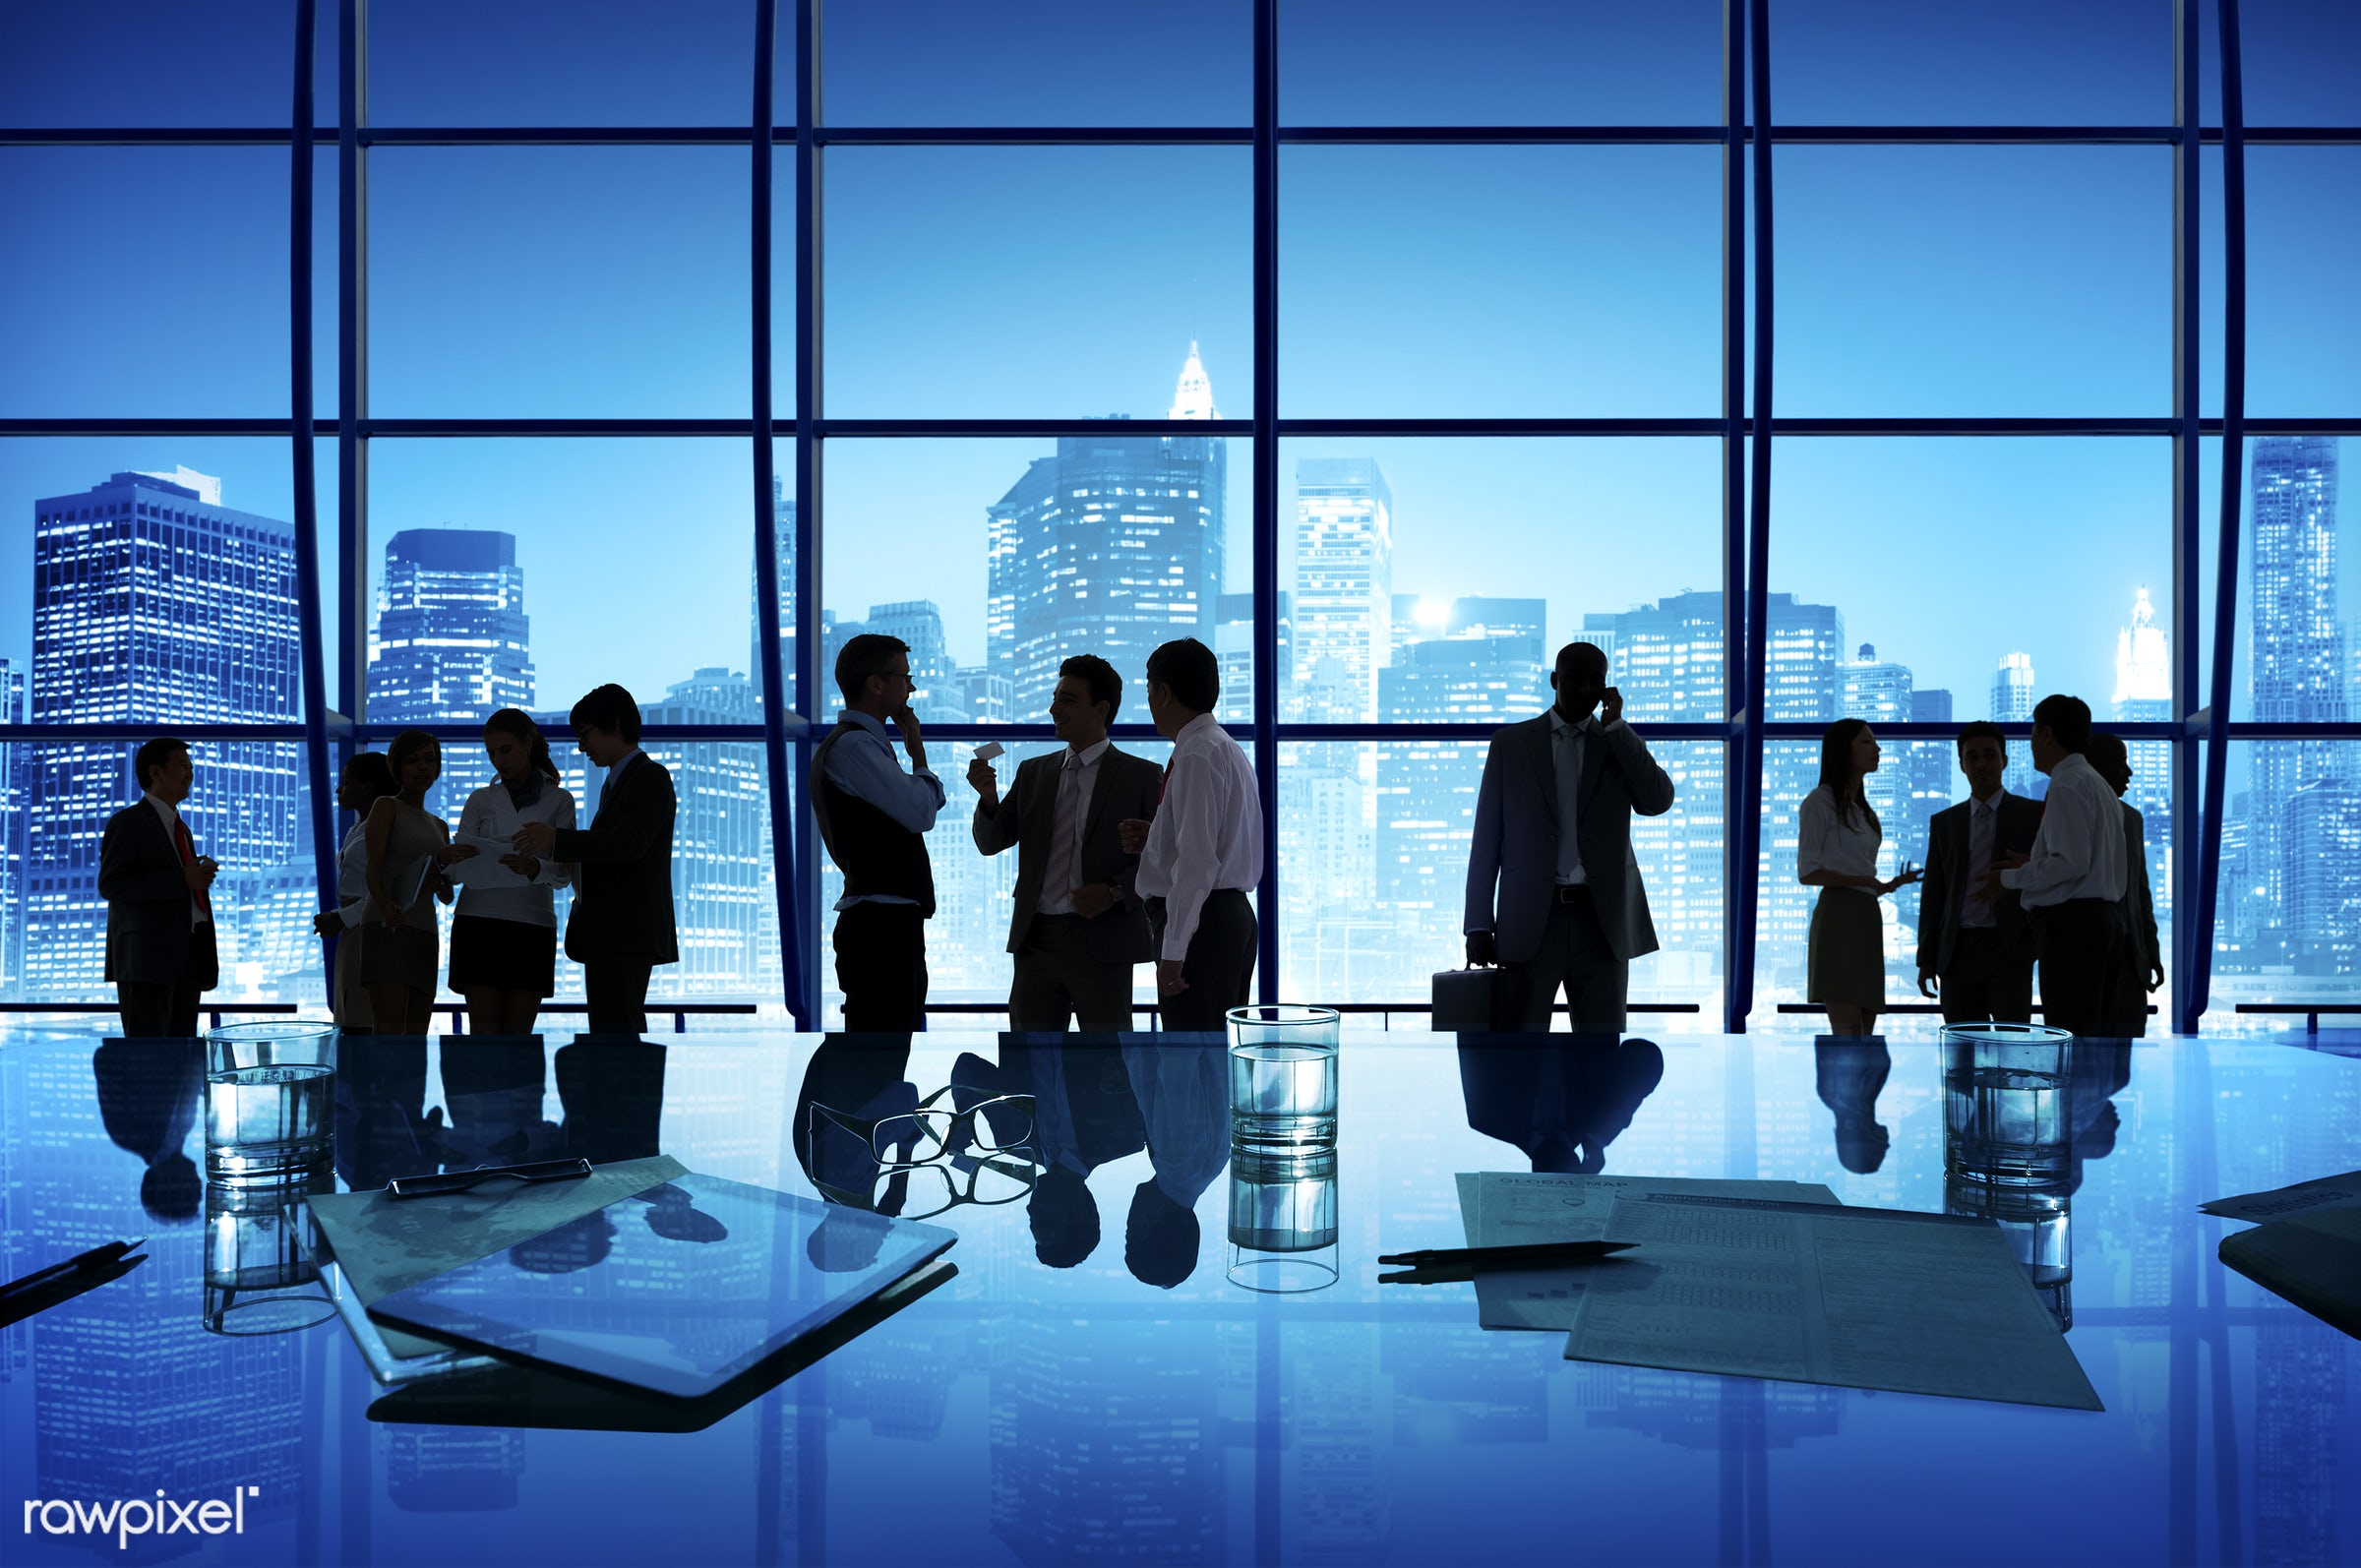 administration, board room, brainstorming, building, business, business people, businessmen, businesswomen, city, cityscape...